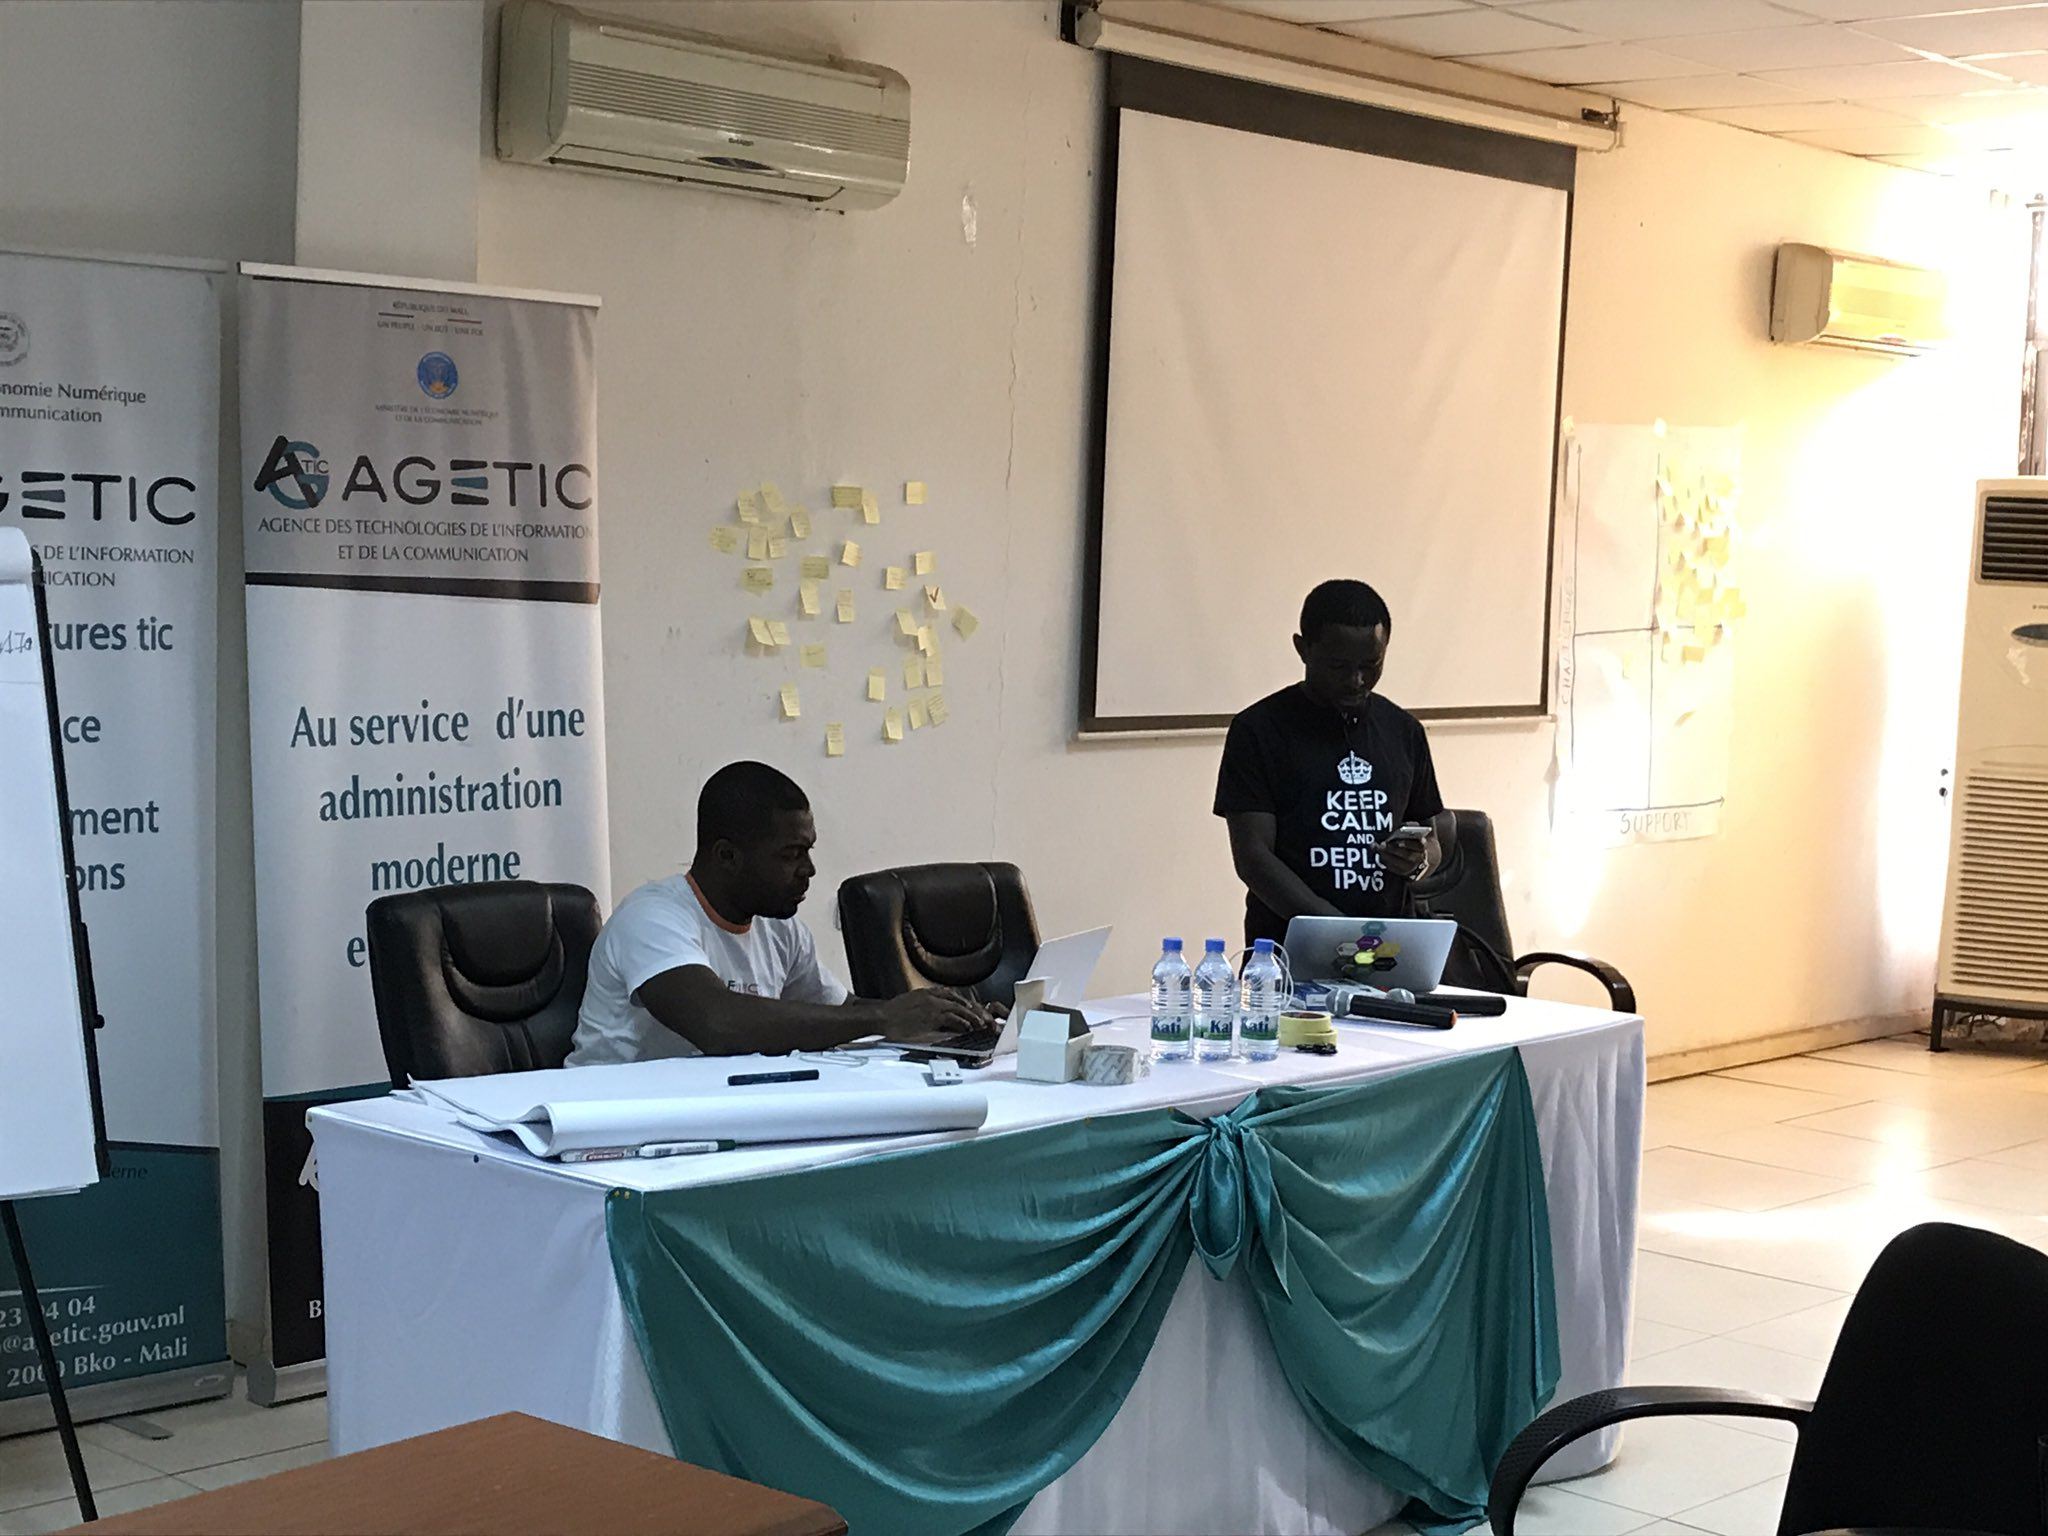 Trainers are Getting ready for the starting of the day 3? training session on #ipv6 #Bamako #Mali @AFRINIC @abbabruce @mhonlue https://t.co/Z1sOUe5hwK